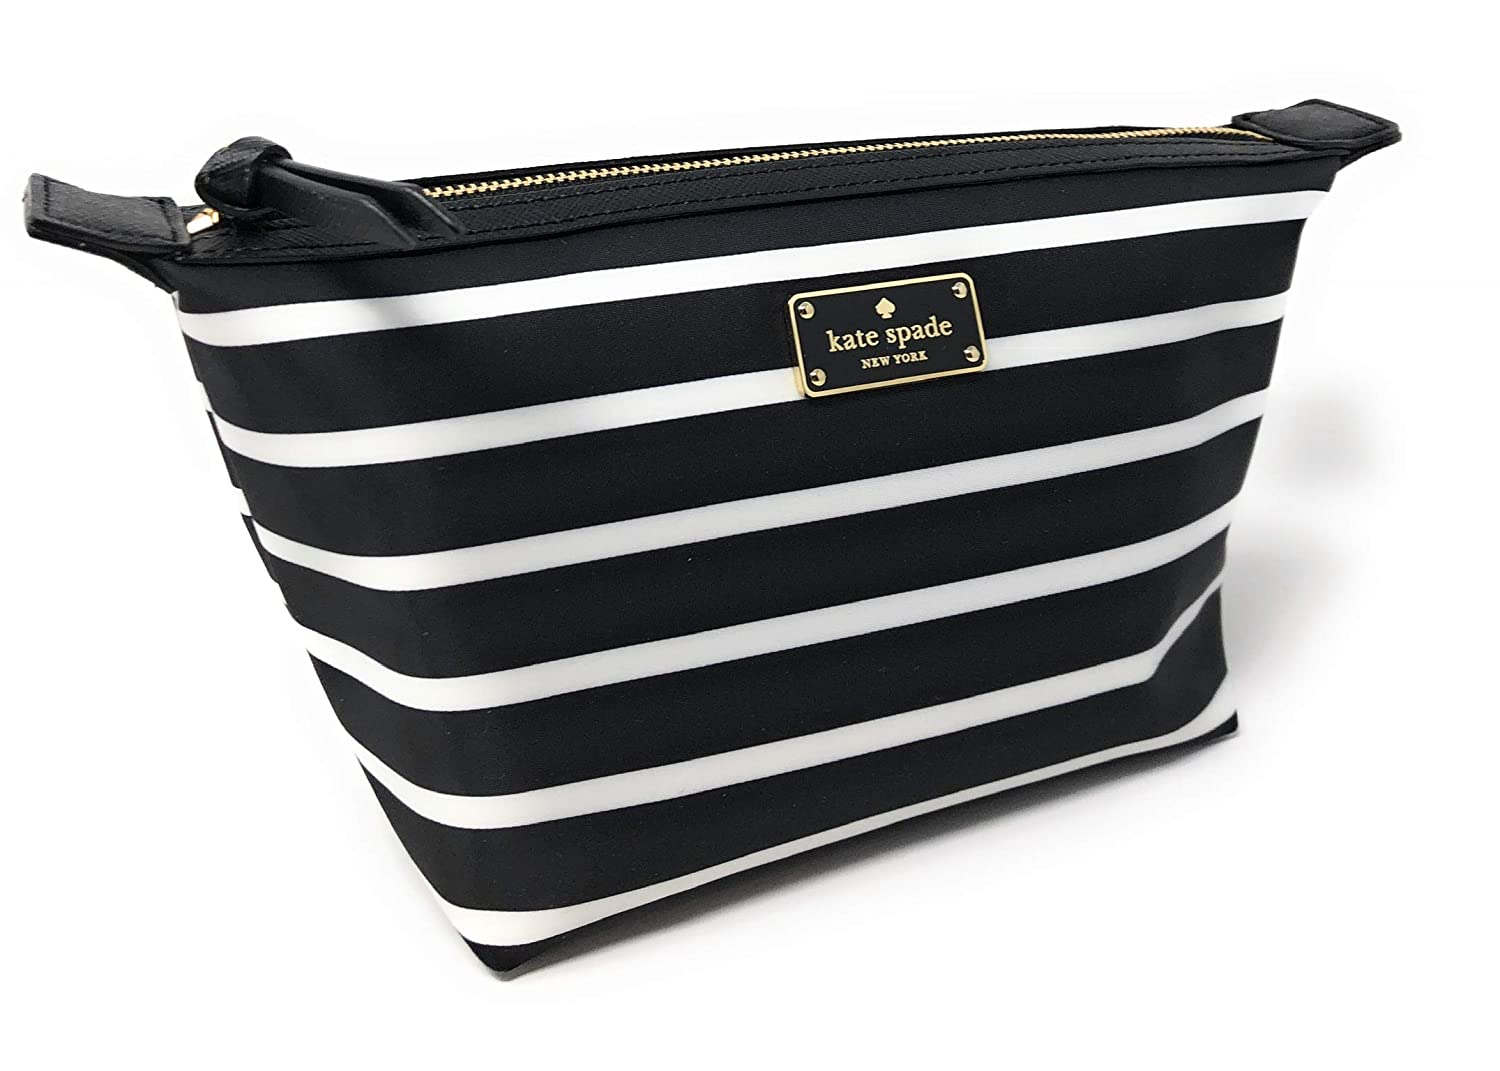 low priced 78ba0 2363c Amazon.com: Kate Spade New York Jodi Makeup Cosmetic Case Travel Bag ...